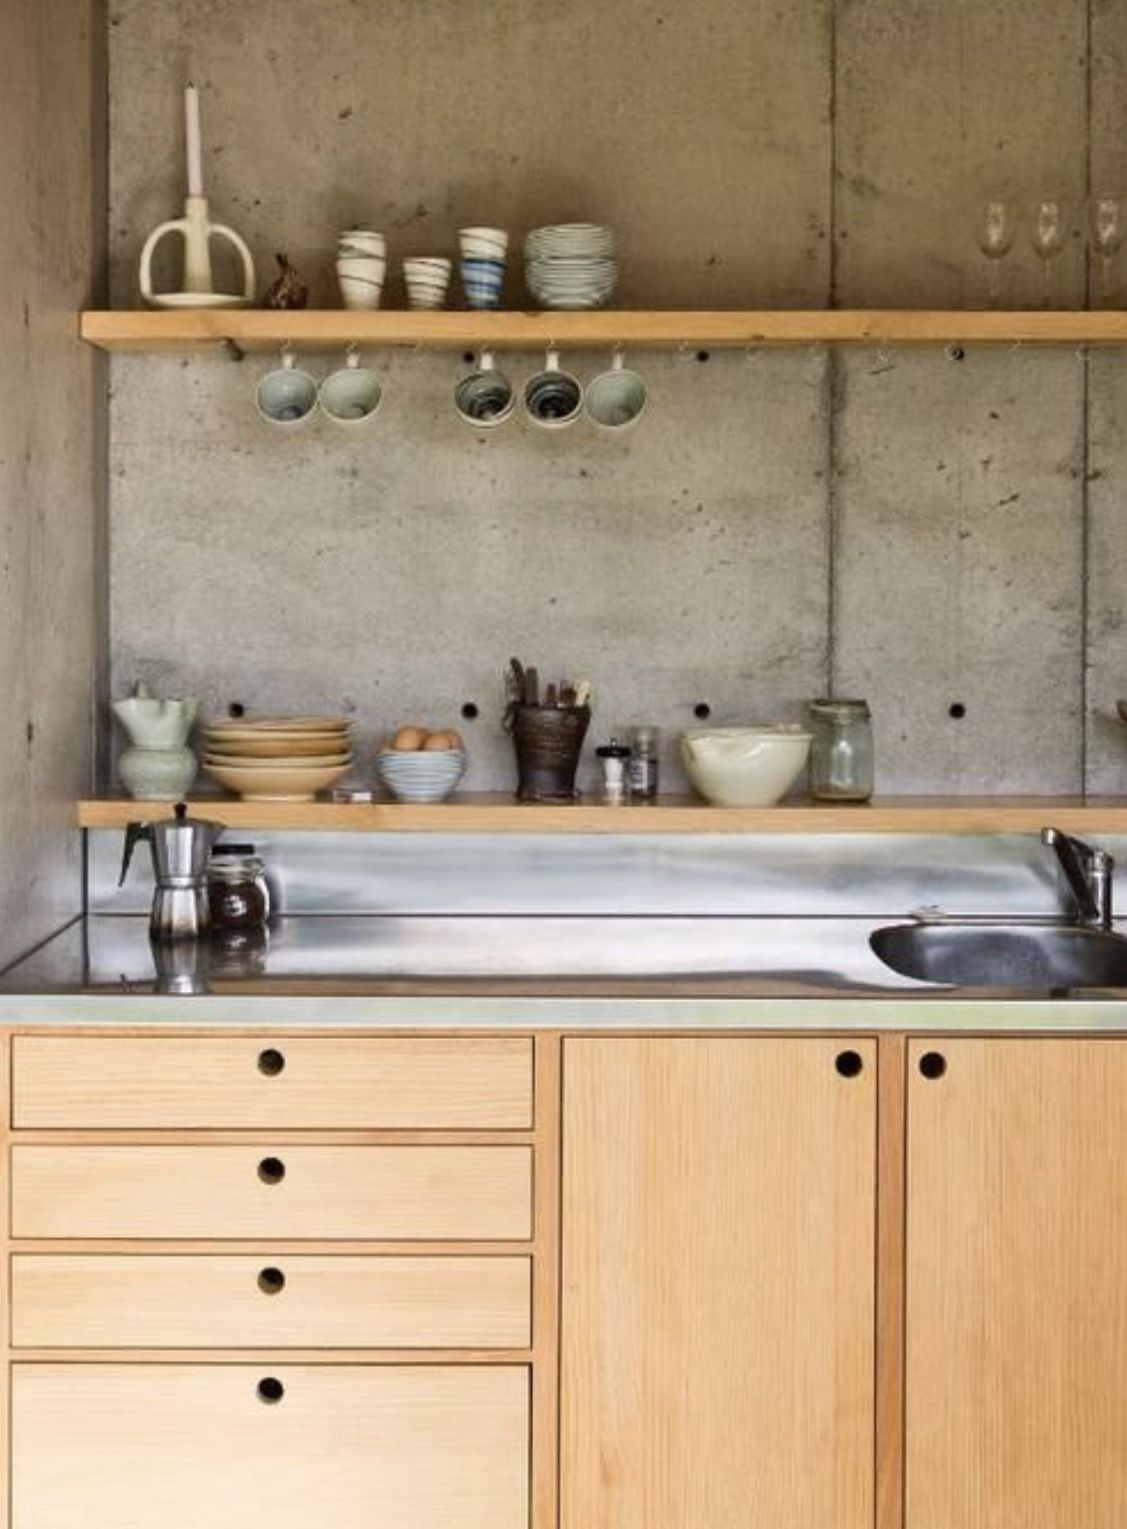 Pin by Jacqueline on the black pearl   Plywood kitchen ...